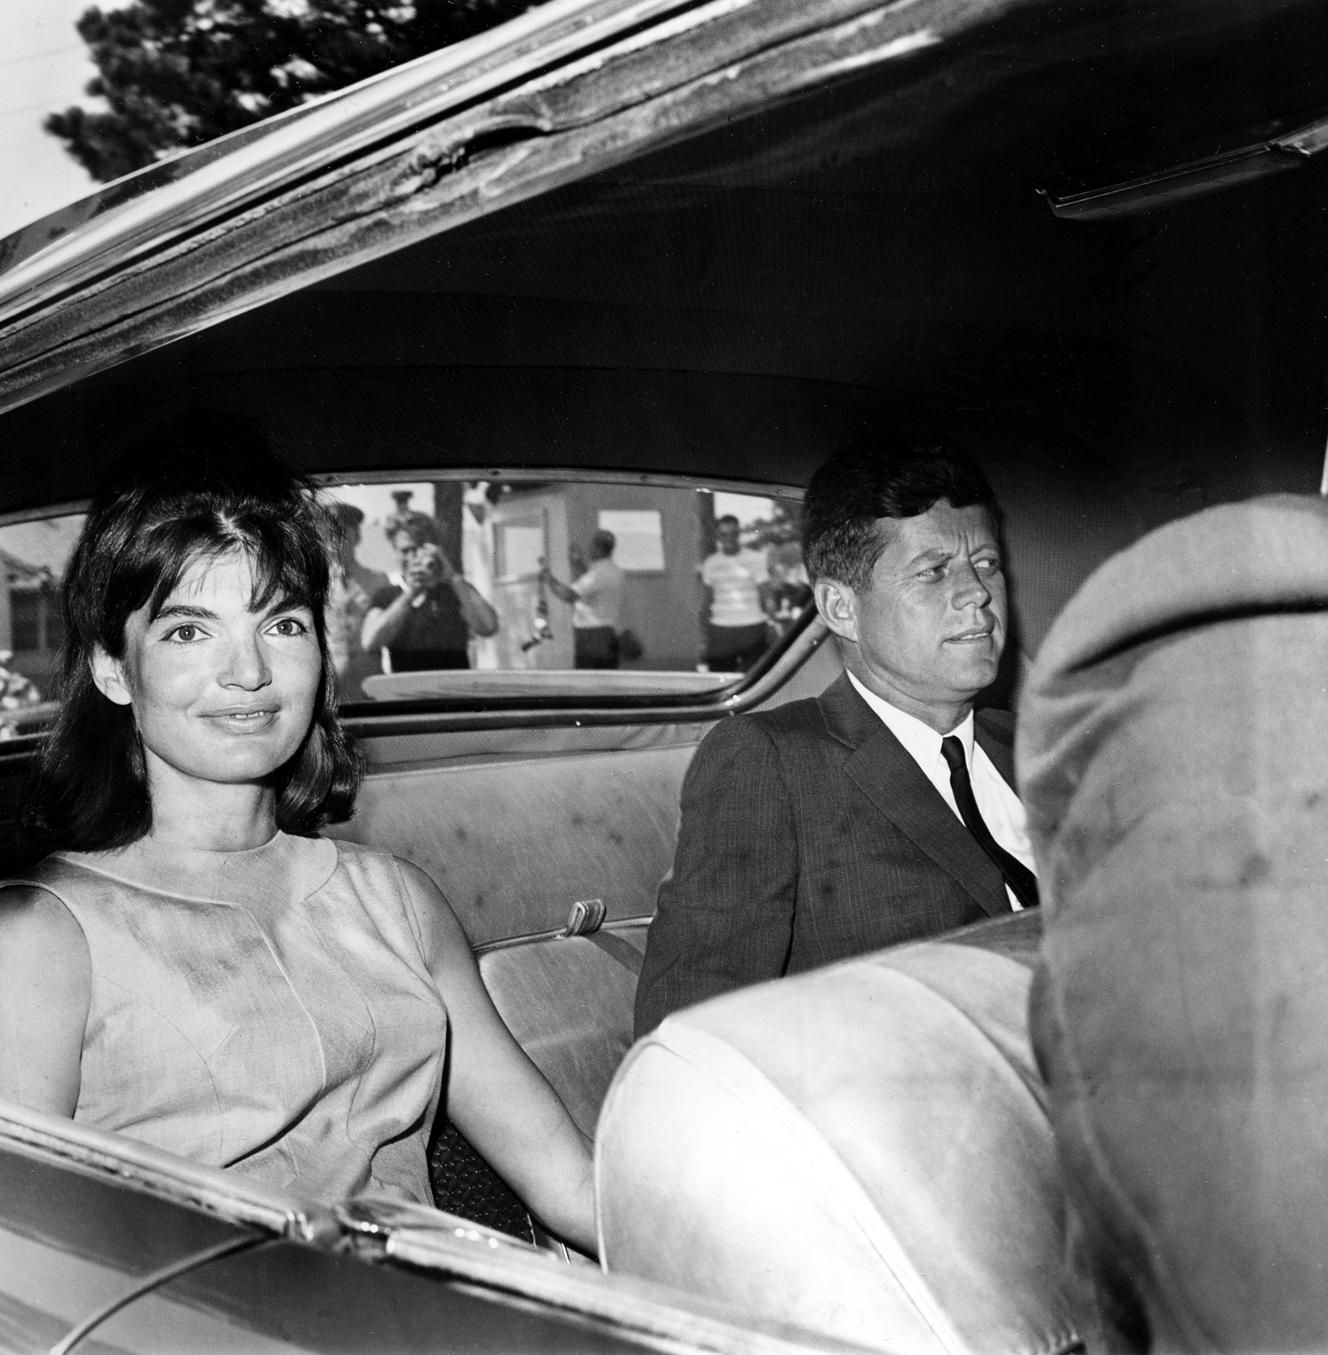 Jacqueline kennedy miscarriage